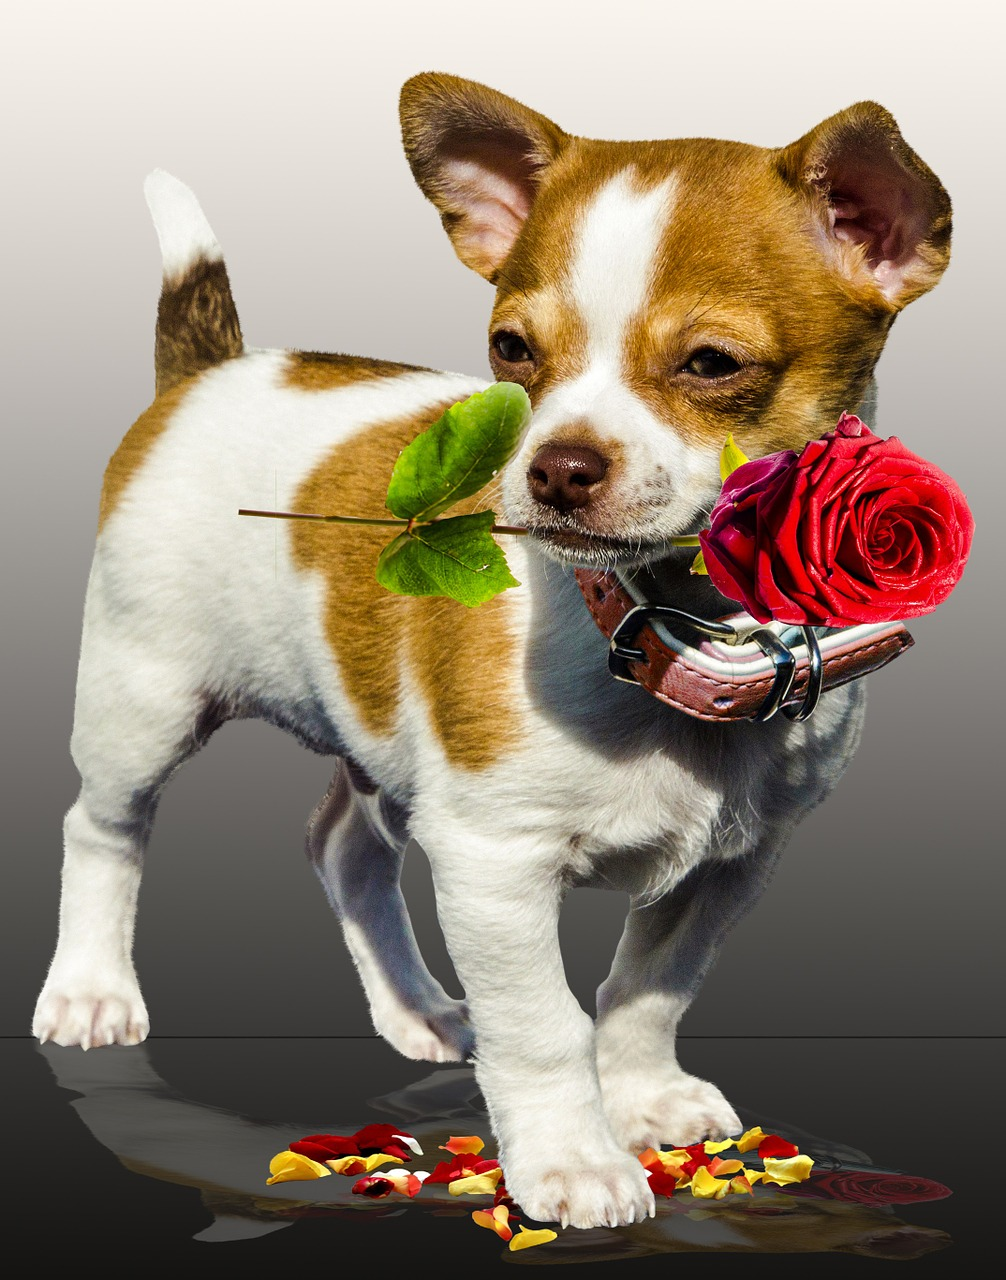 """The Real Power of Dog Love"" Report Shows Dog Love Eclipses Romance This Valentine's Day"